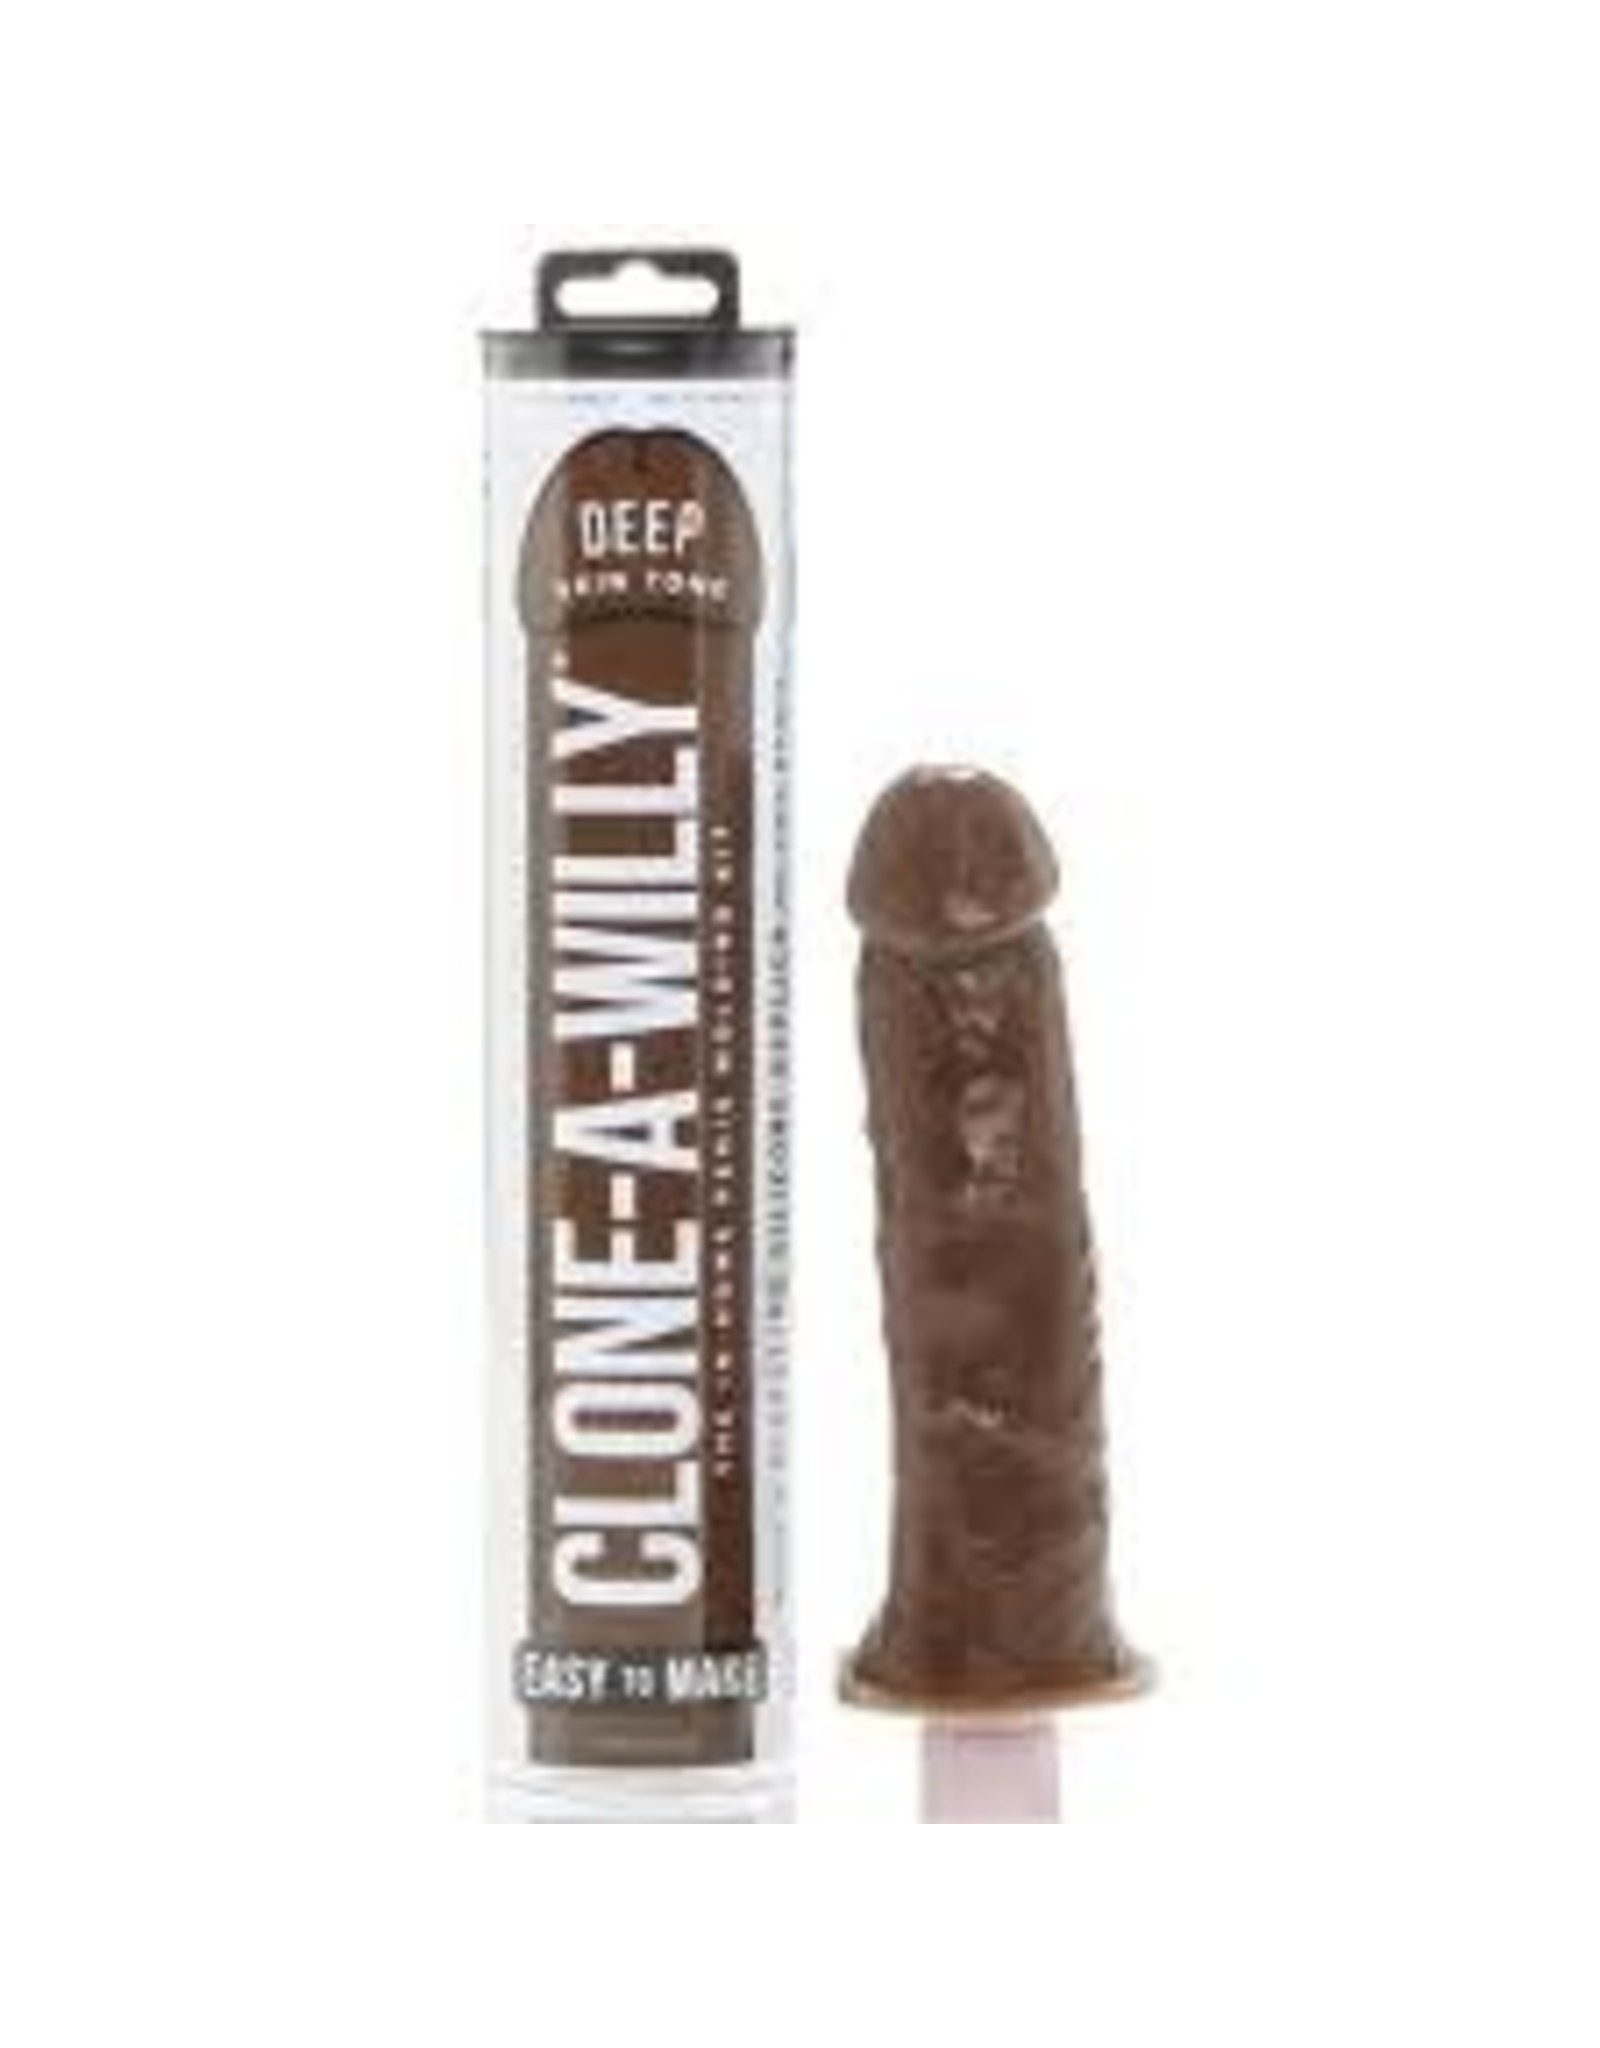 Clone-A-Willy Clone-A-Willy - Vibrating Deep Skin Tone